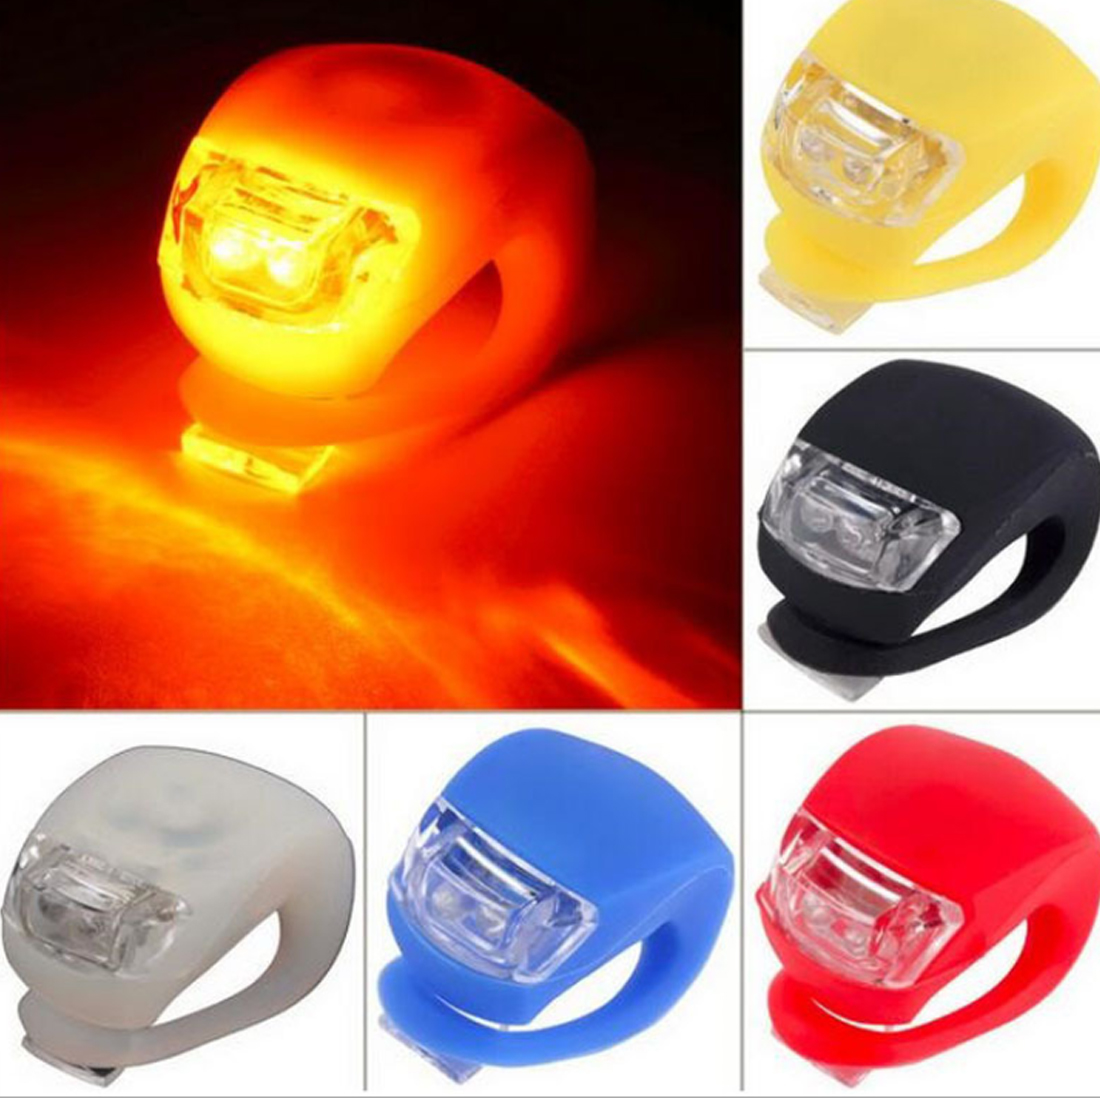 Silicone Bicycle Bike Head Front Rear Wheel LED Light Flash Safety Lamps Cycling Light Bicycle Accessories